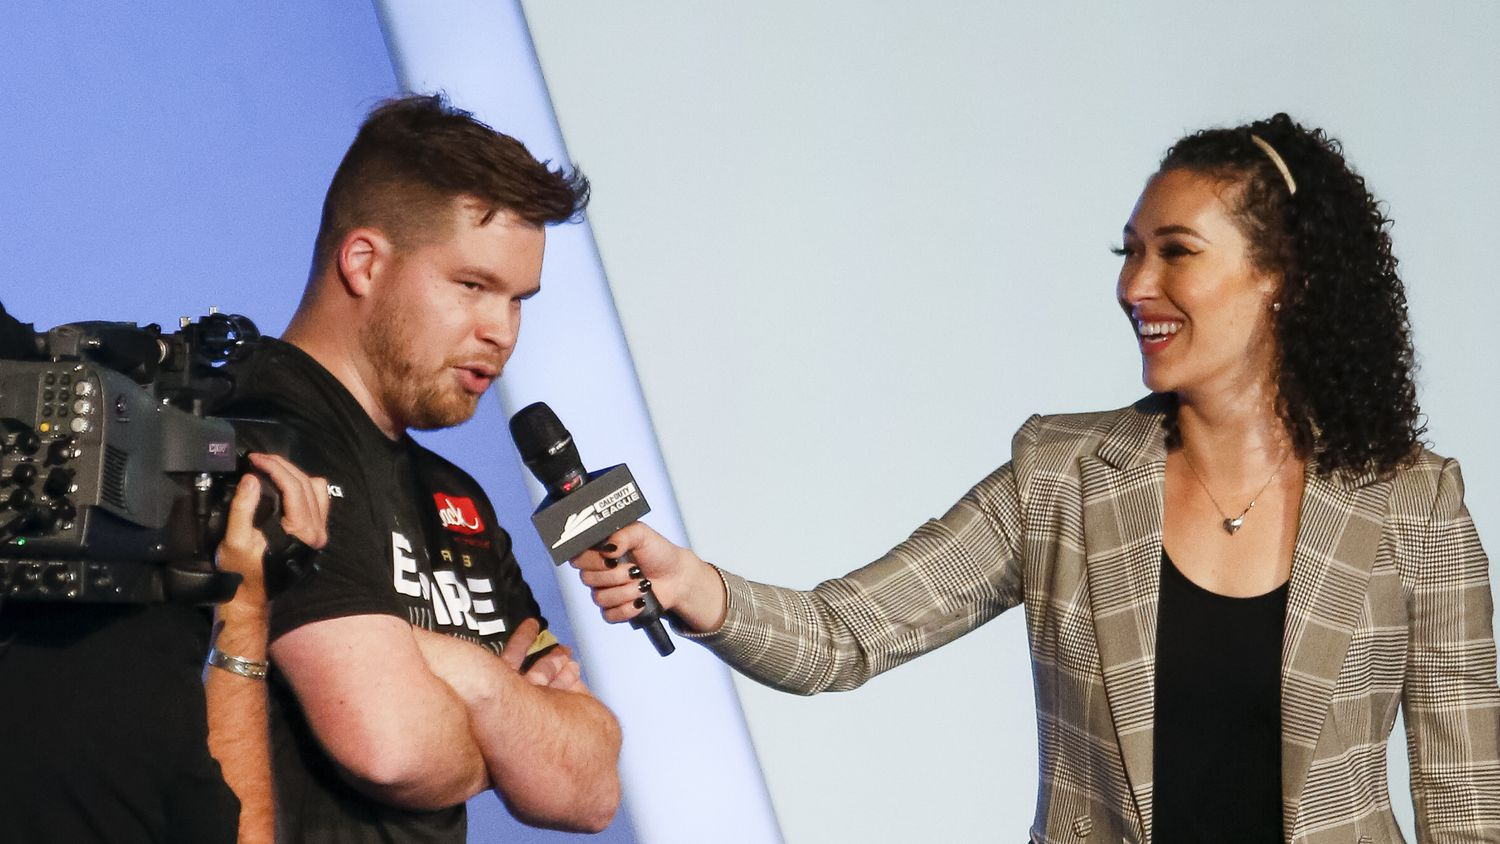 """Ian """"Crimsix"""" Porter (left) speaks with host  Ian """"Crimsix"""" Porter after defeating the Los Angeles Thieves during the Call of Duty League Major V tournament at Esports Stadium Arlington on Saturday, July 31, 2021, in Arlington."""